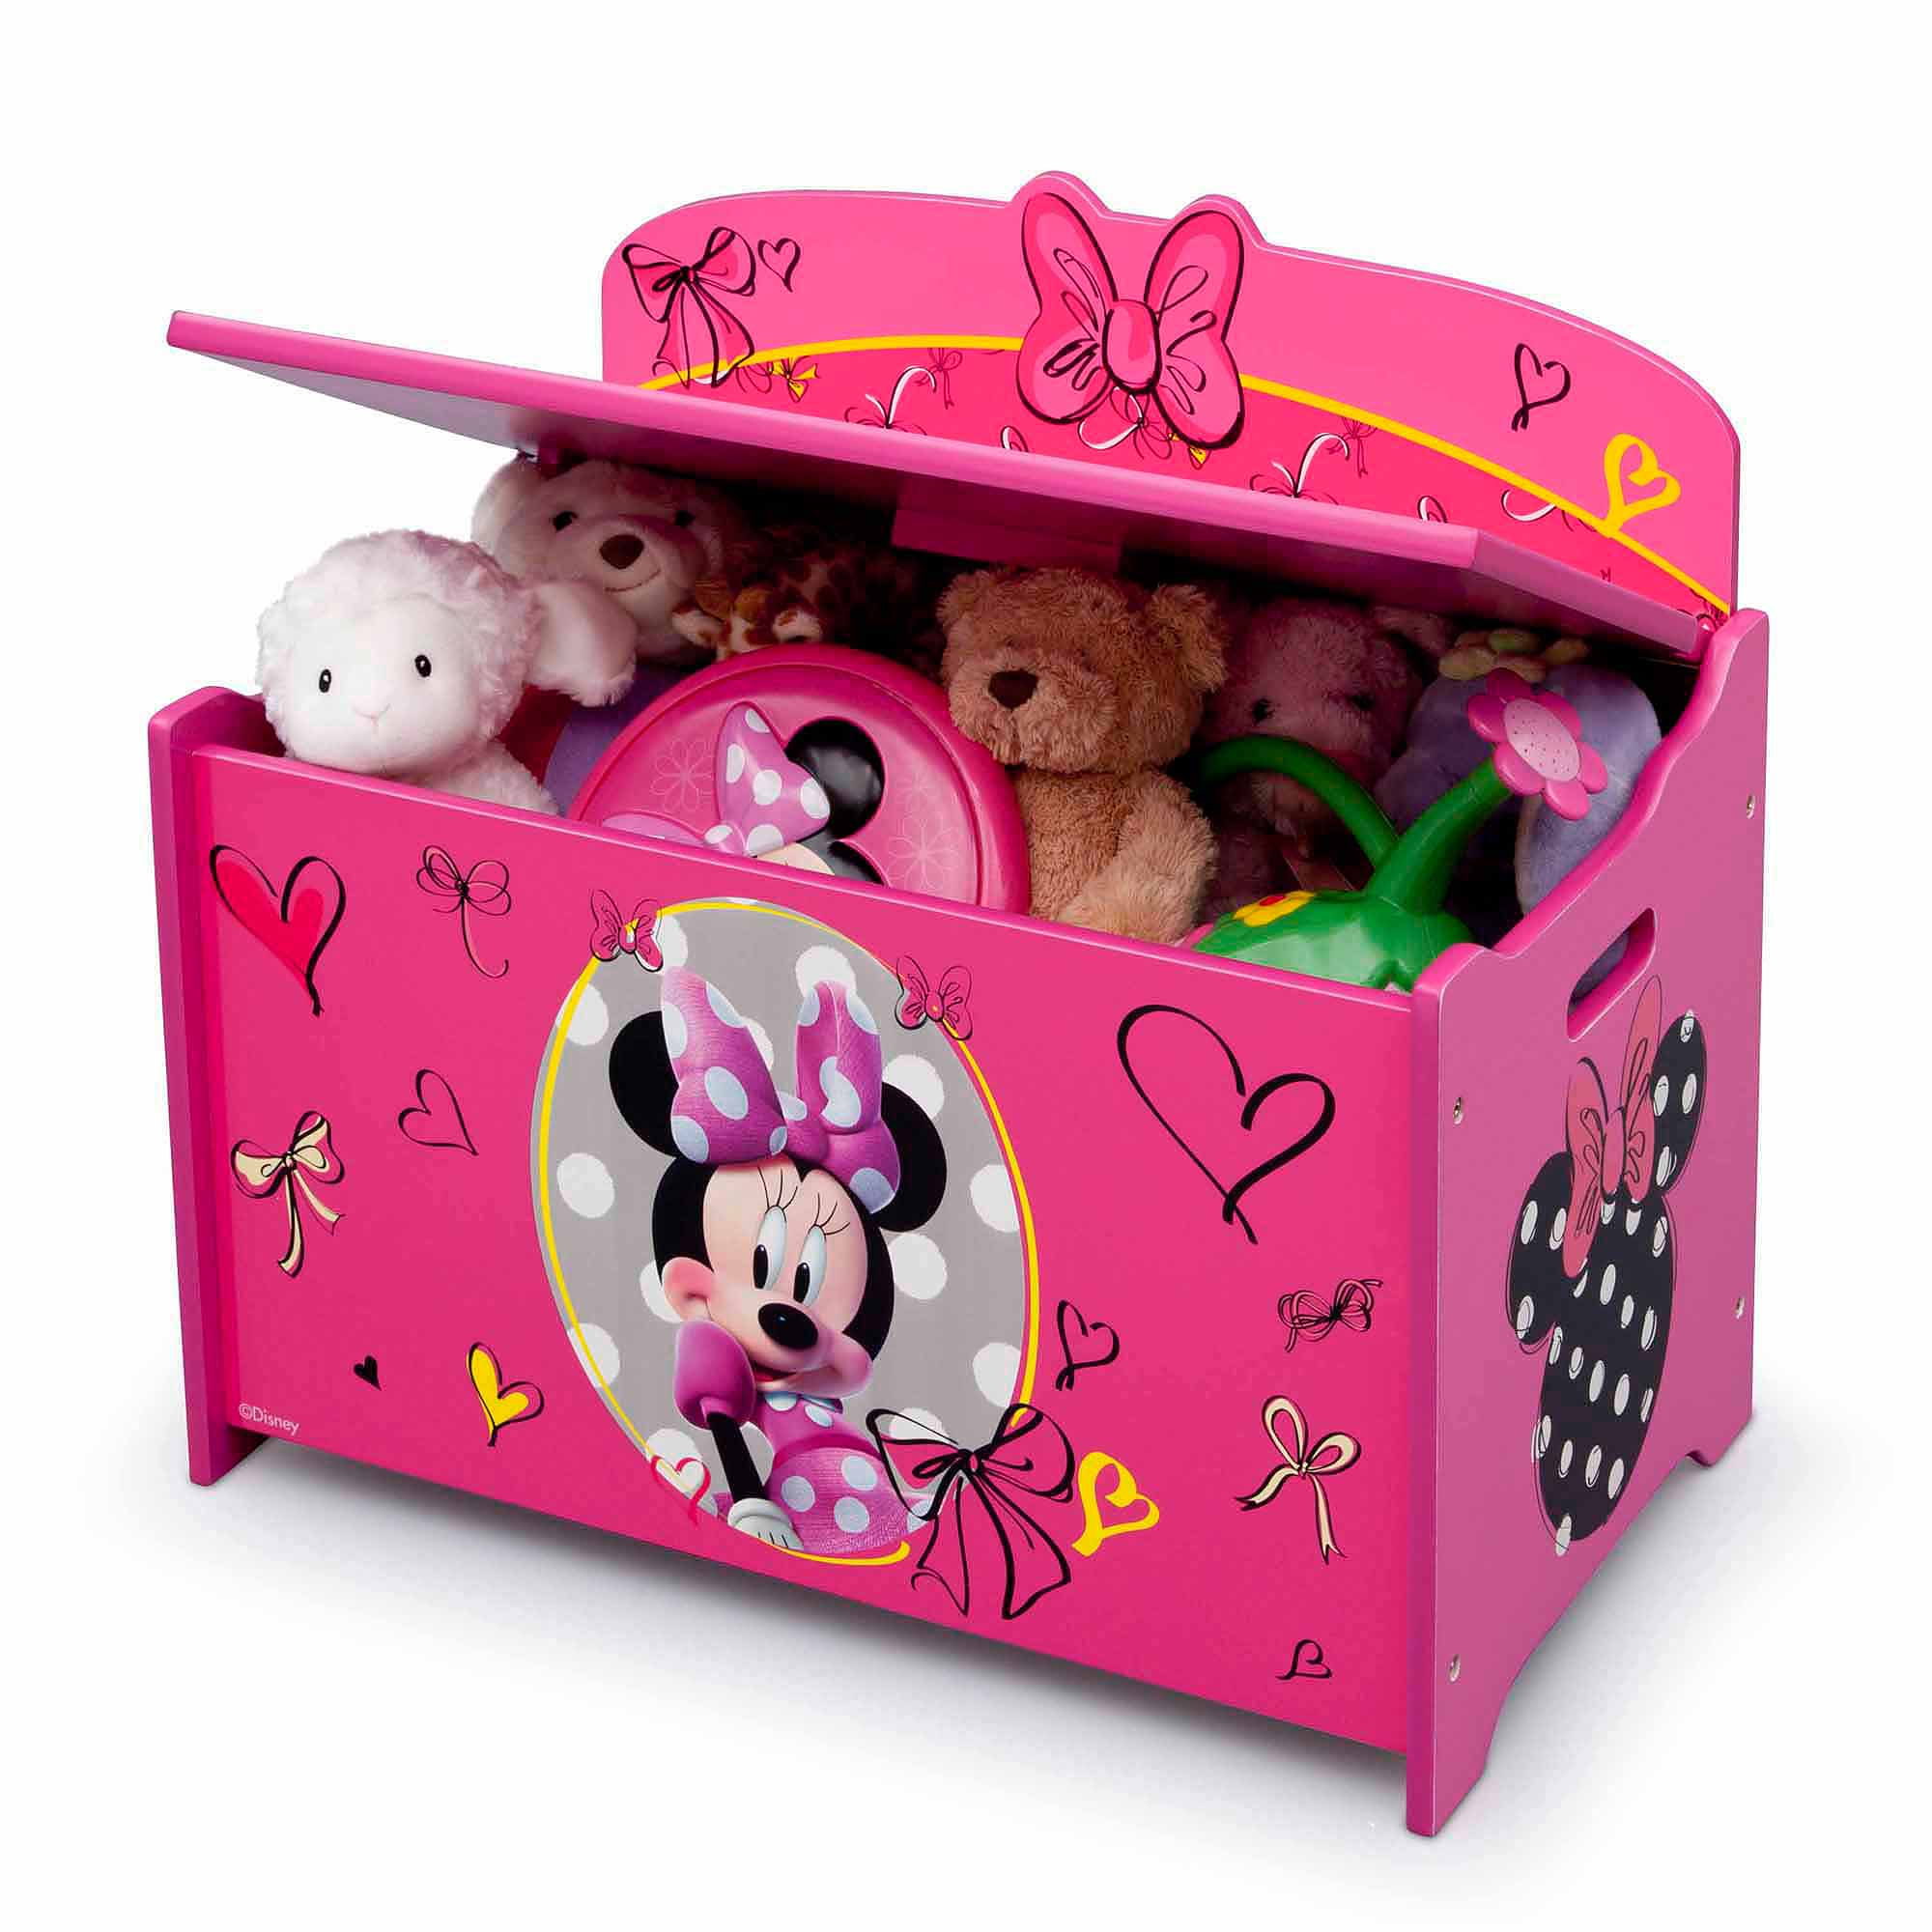 Toy Box Toys Disney Minnie Mouse Deluxe Wood Toy Box By Delta Children